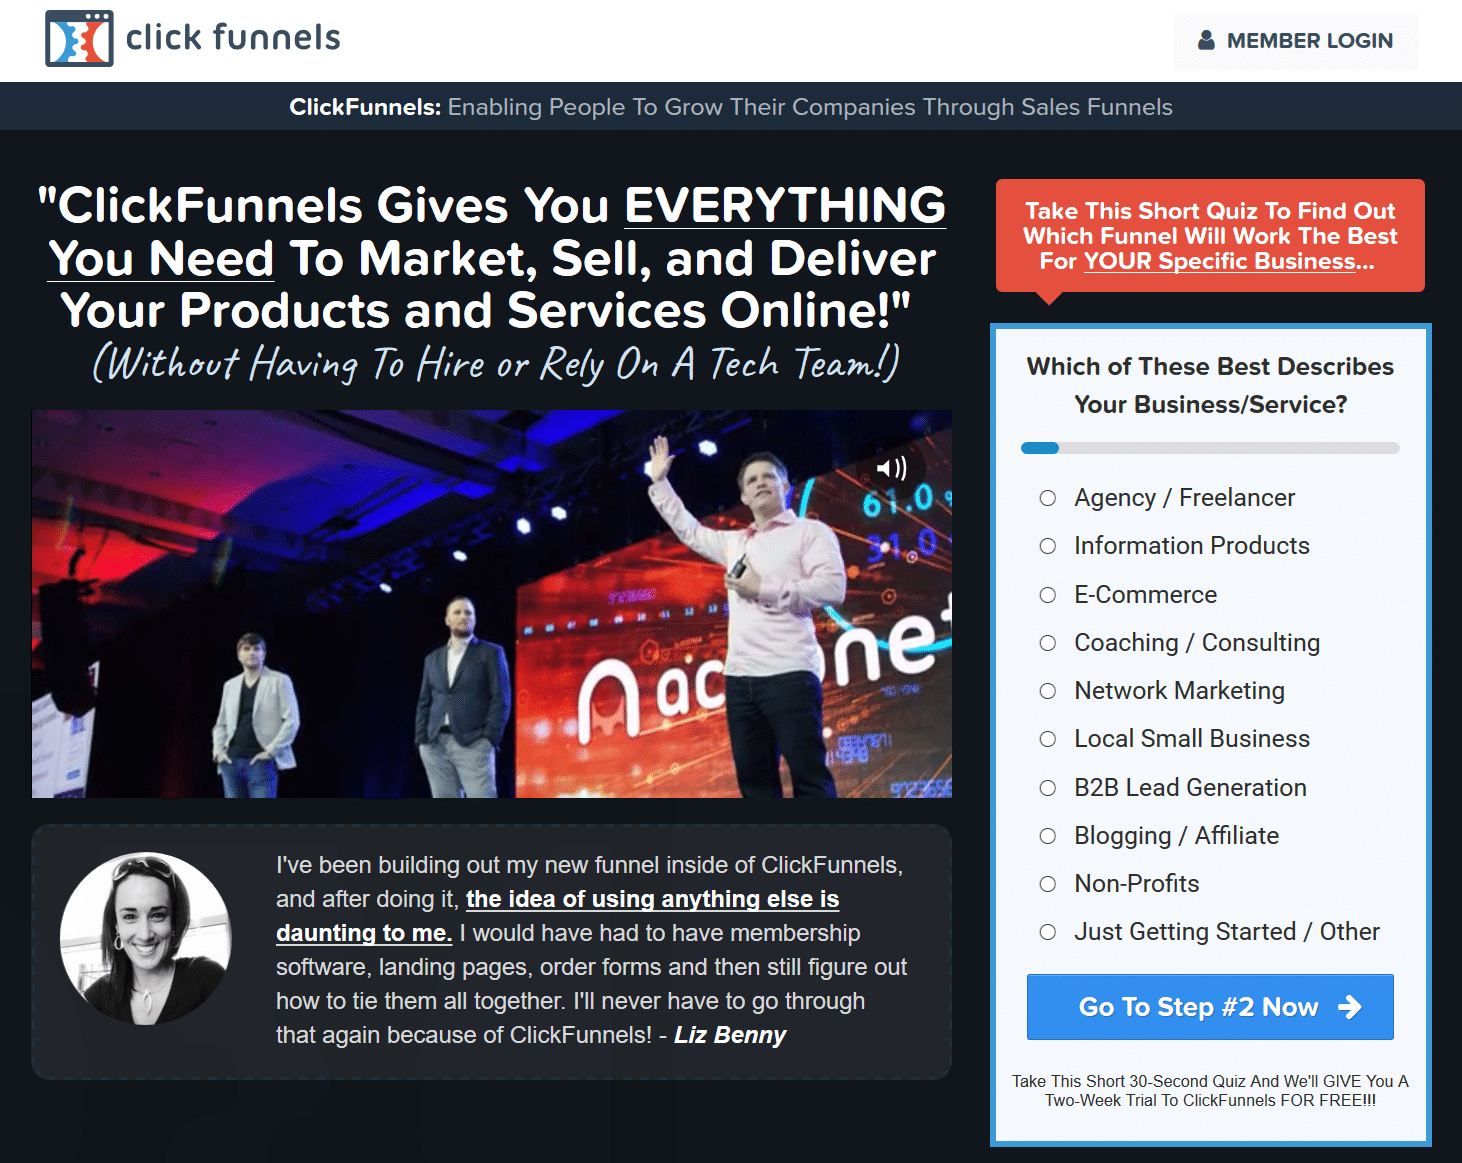 How To Add Flavicon In Clickfunnels